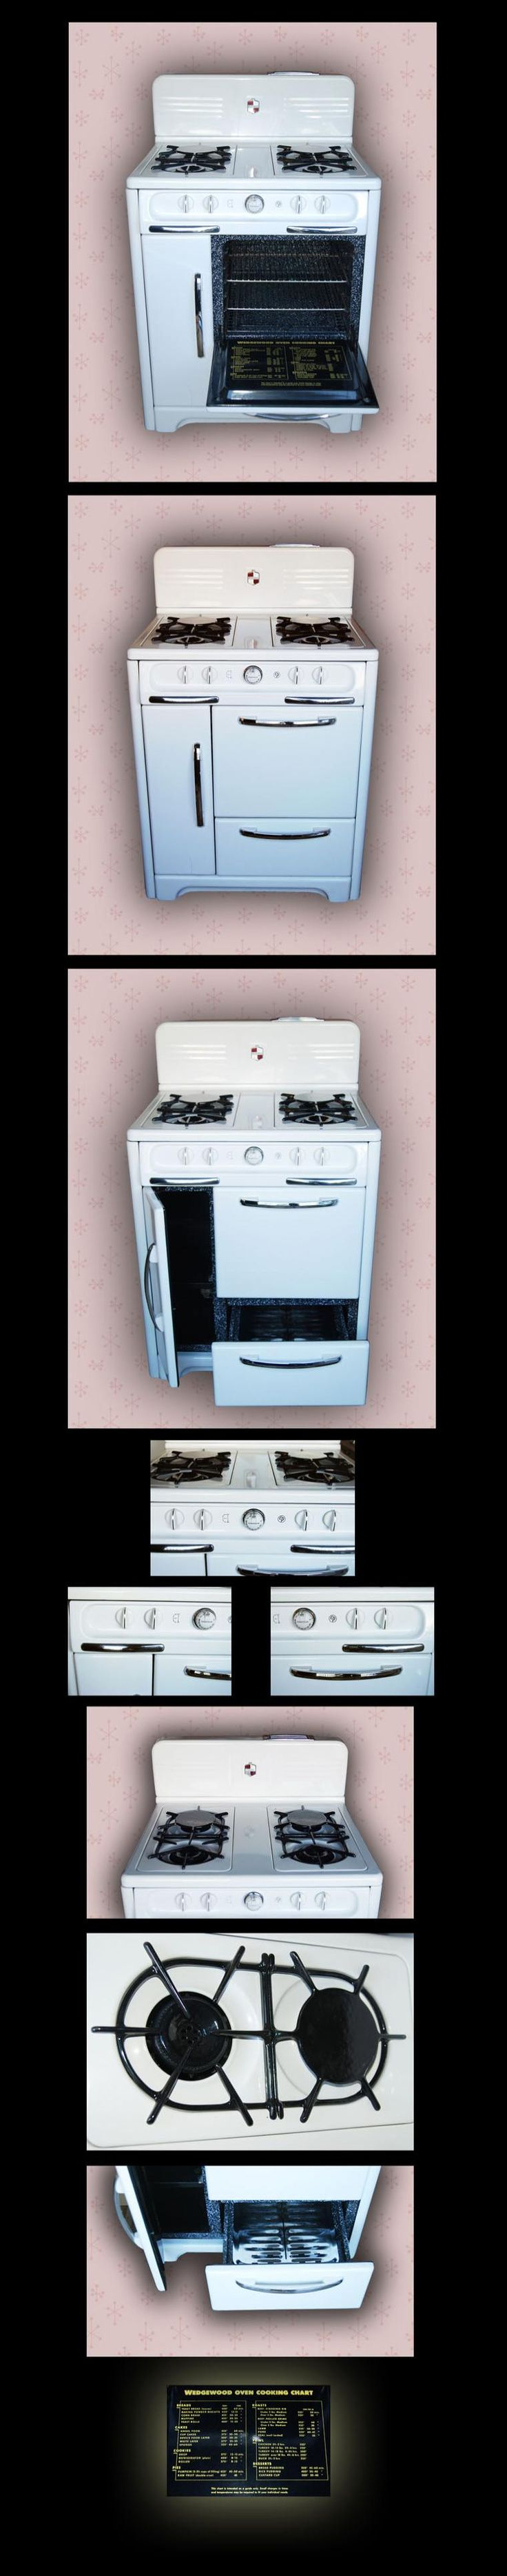 wedgewood stove apartment size vintage apartment